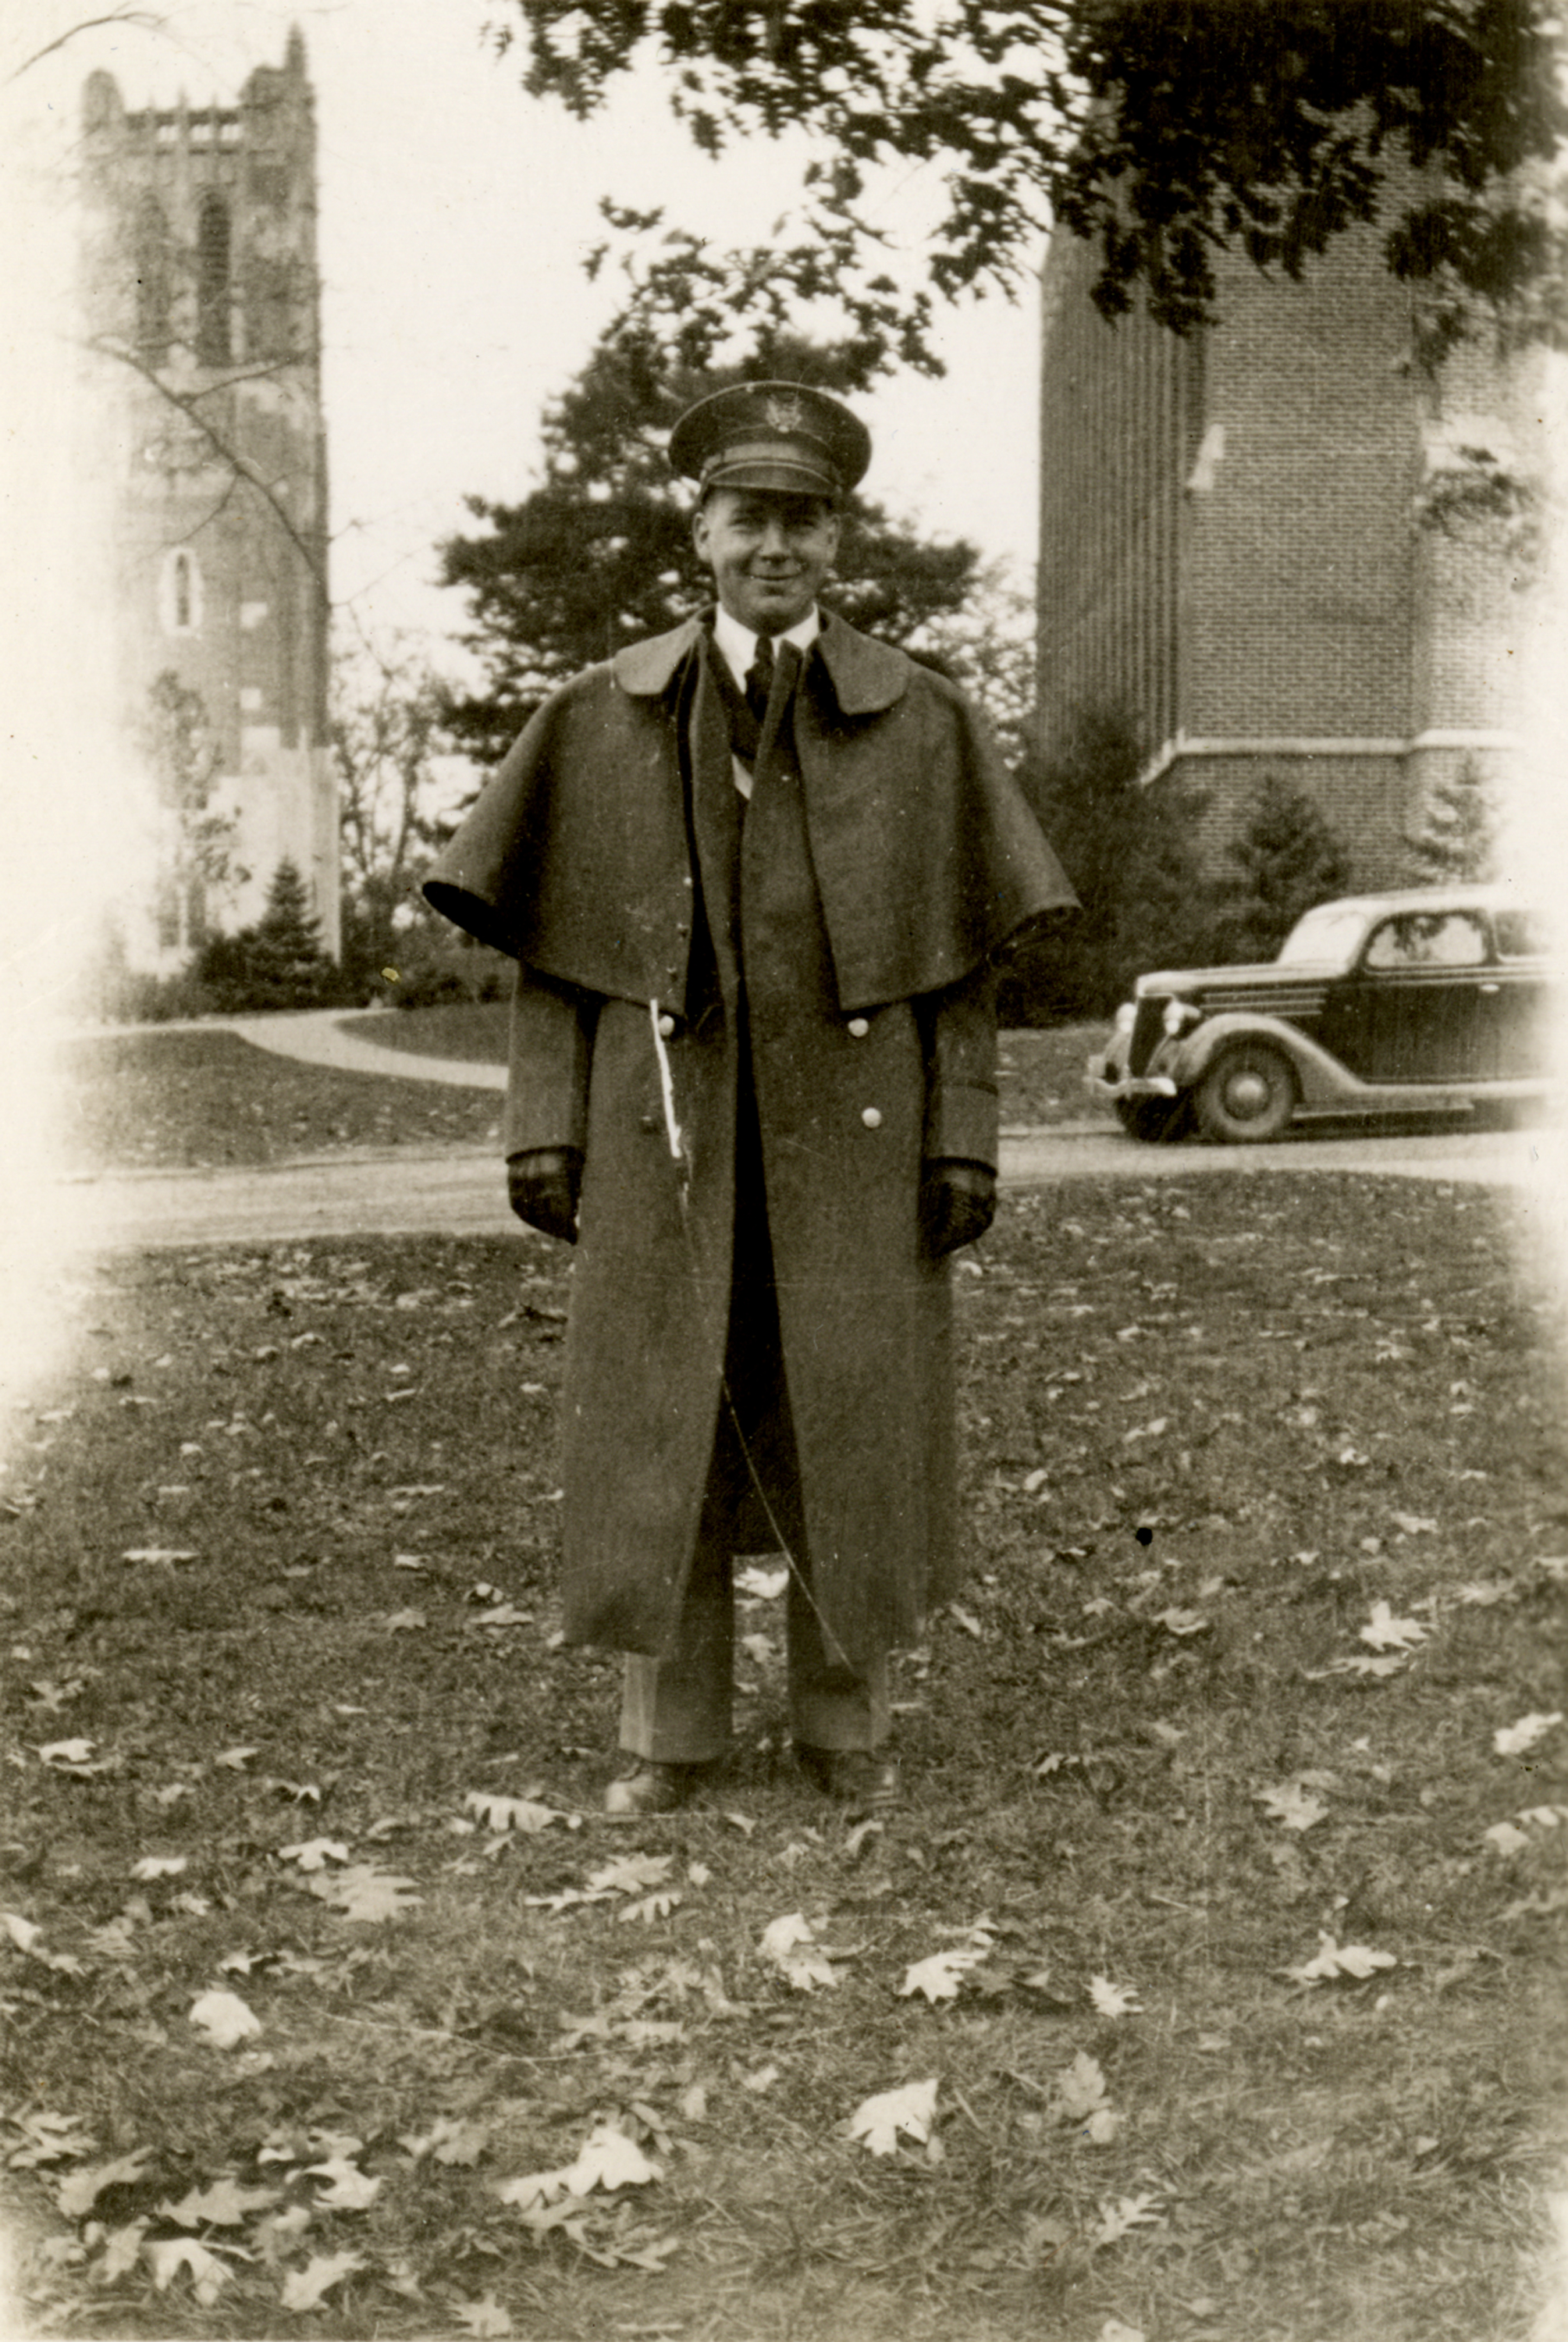 Ture Johnson in uniform infront of Beaumont Tower, circa 1935